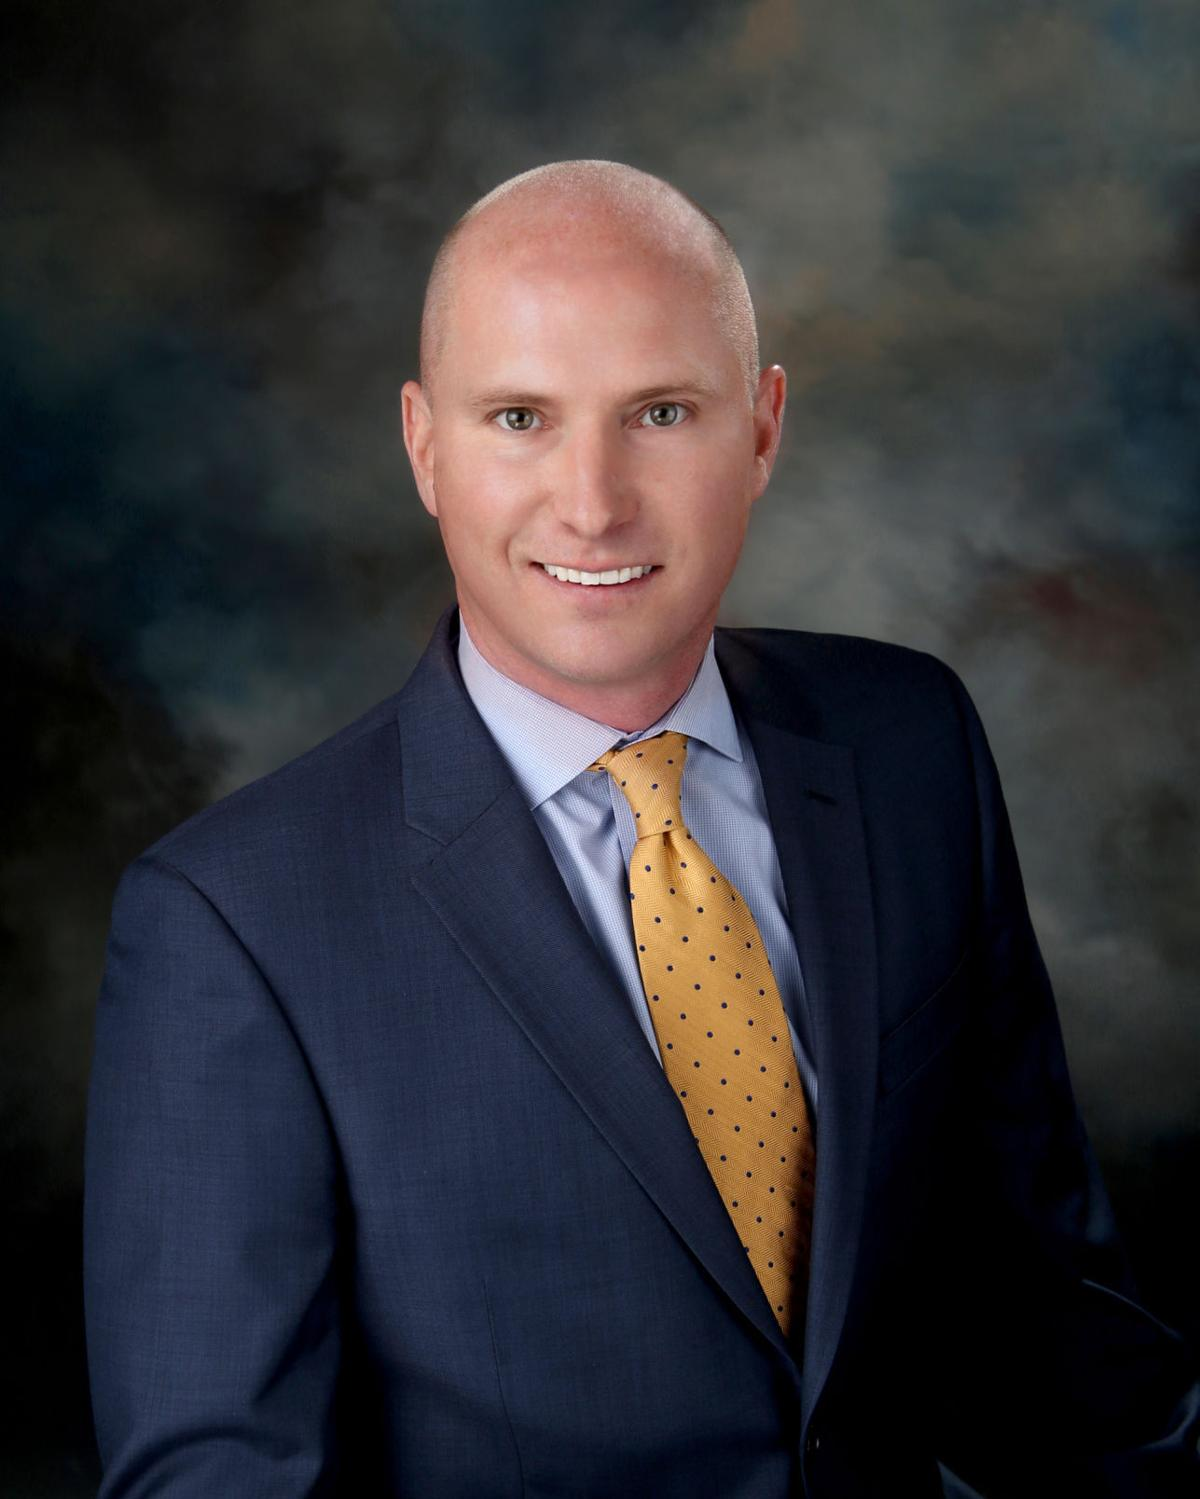 Joe Koss, president and CEO of Culver Franchising System